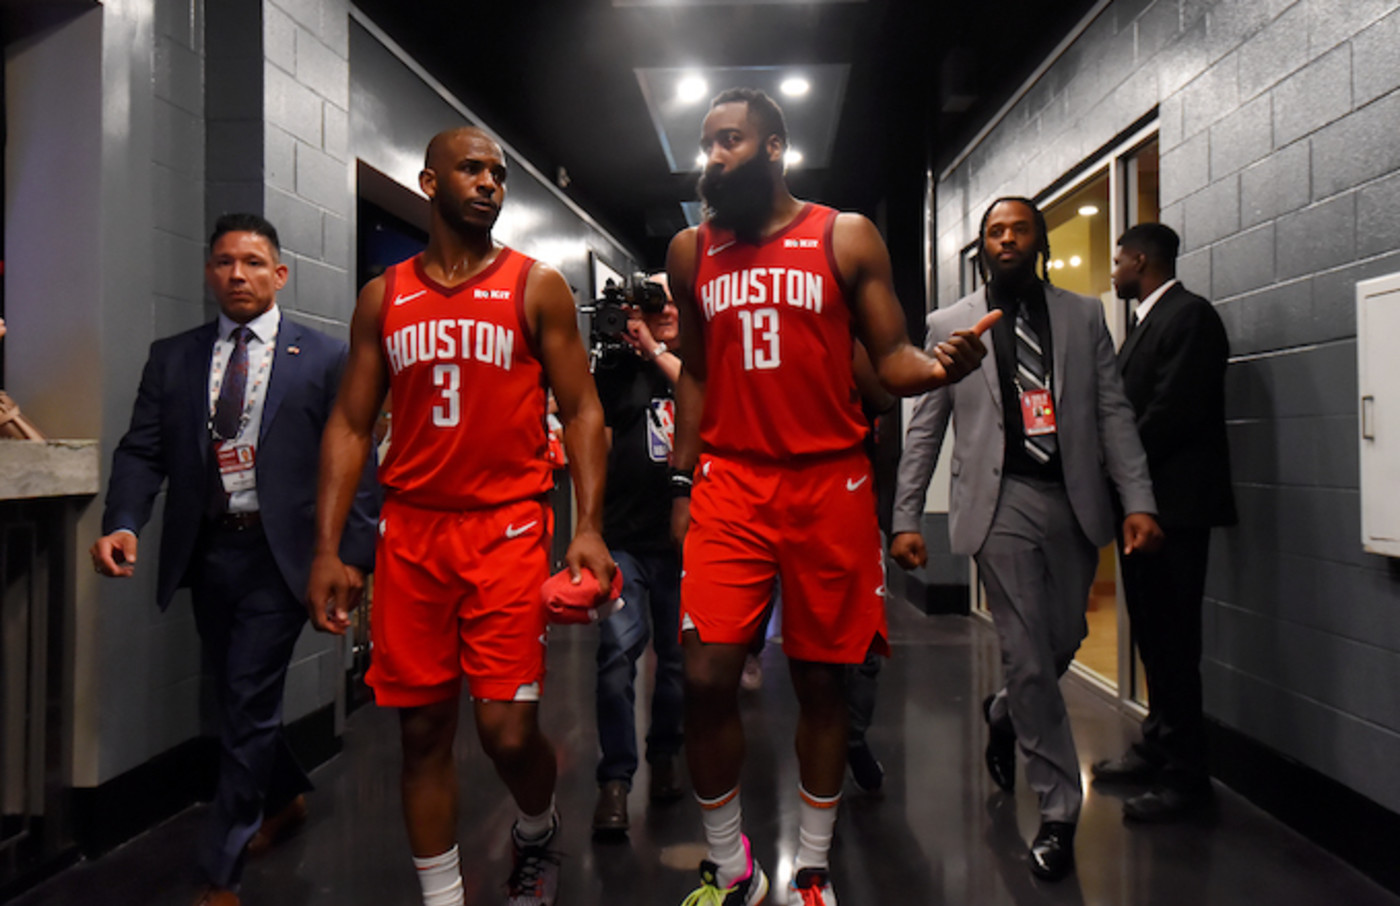 Chris Paul and James Harden heading to locker room after Western Conference Semifinals Game 4.